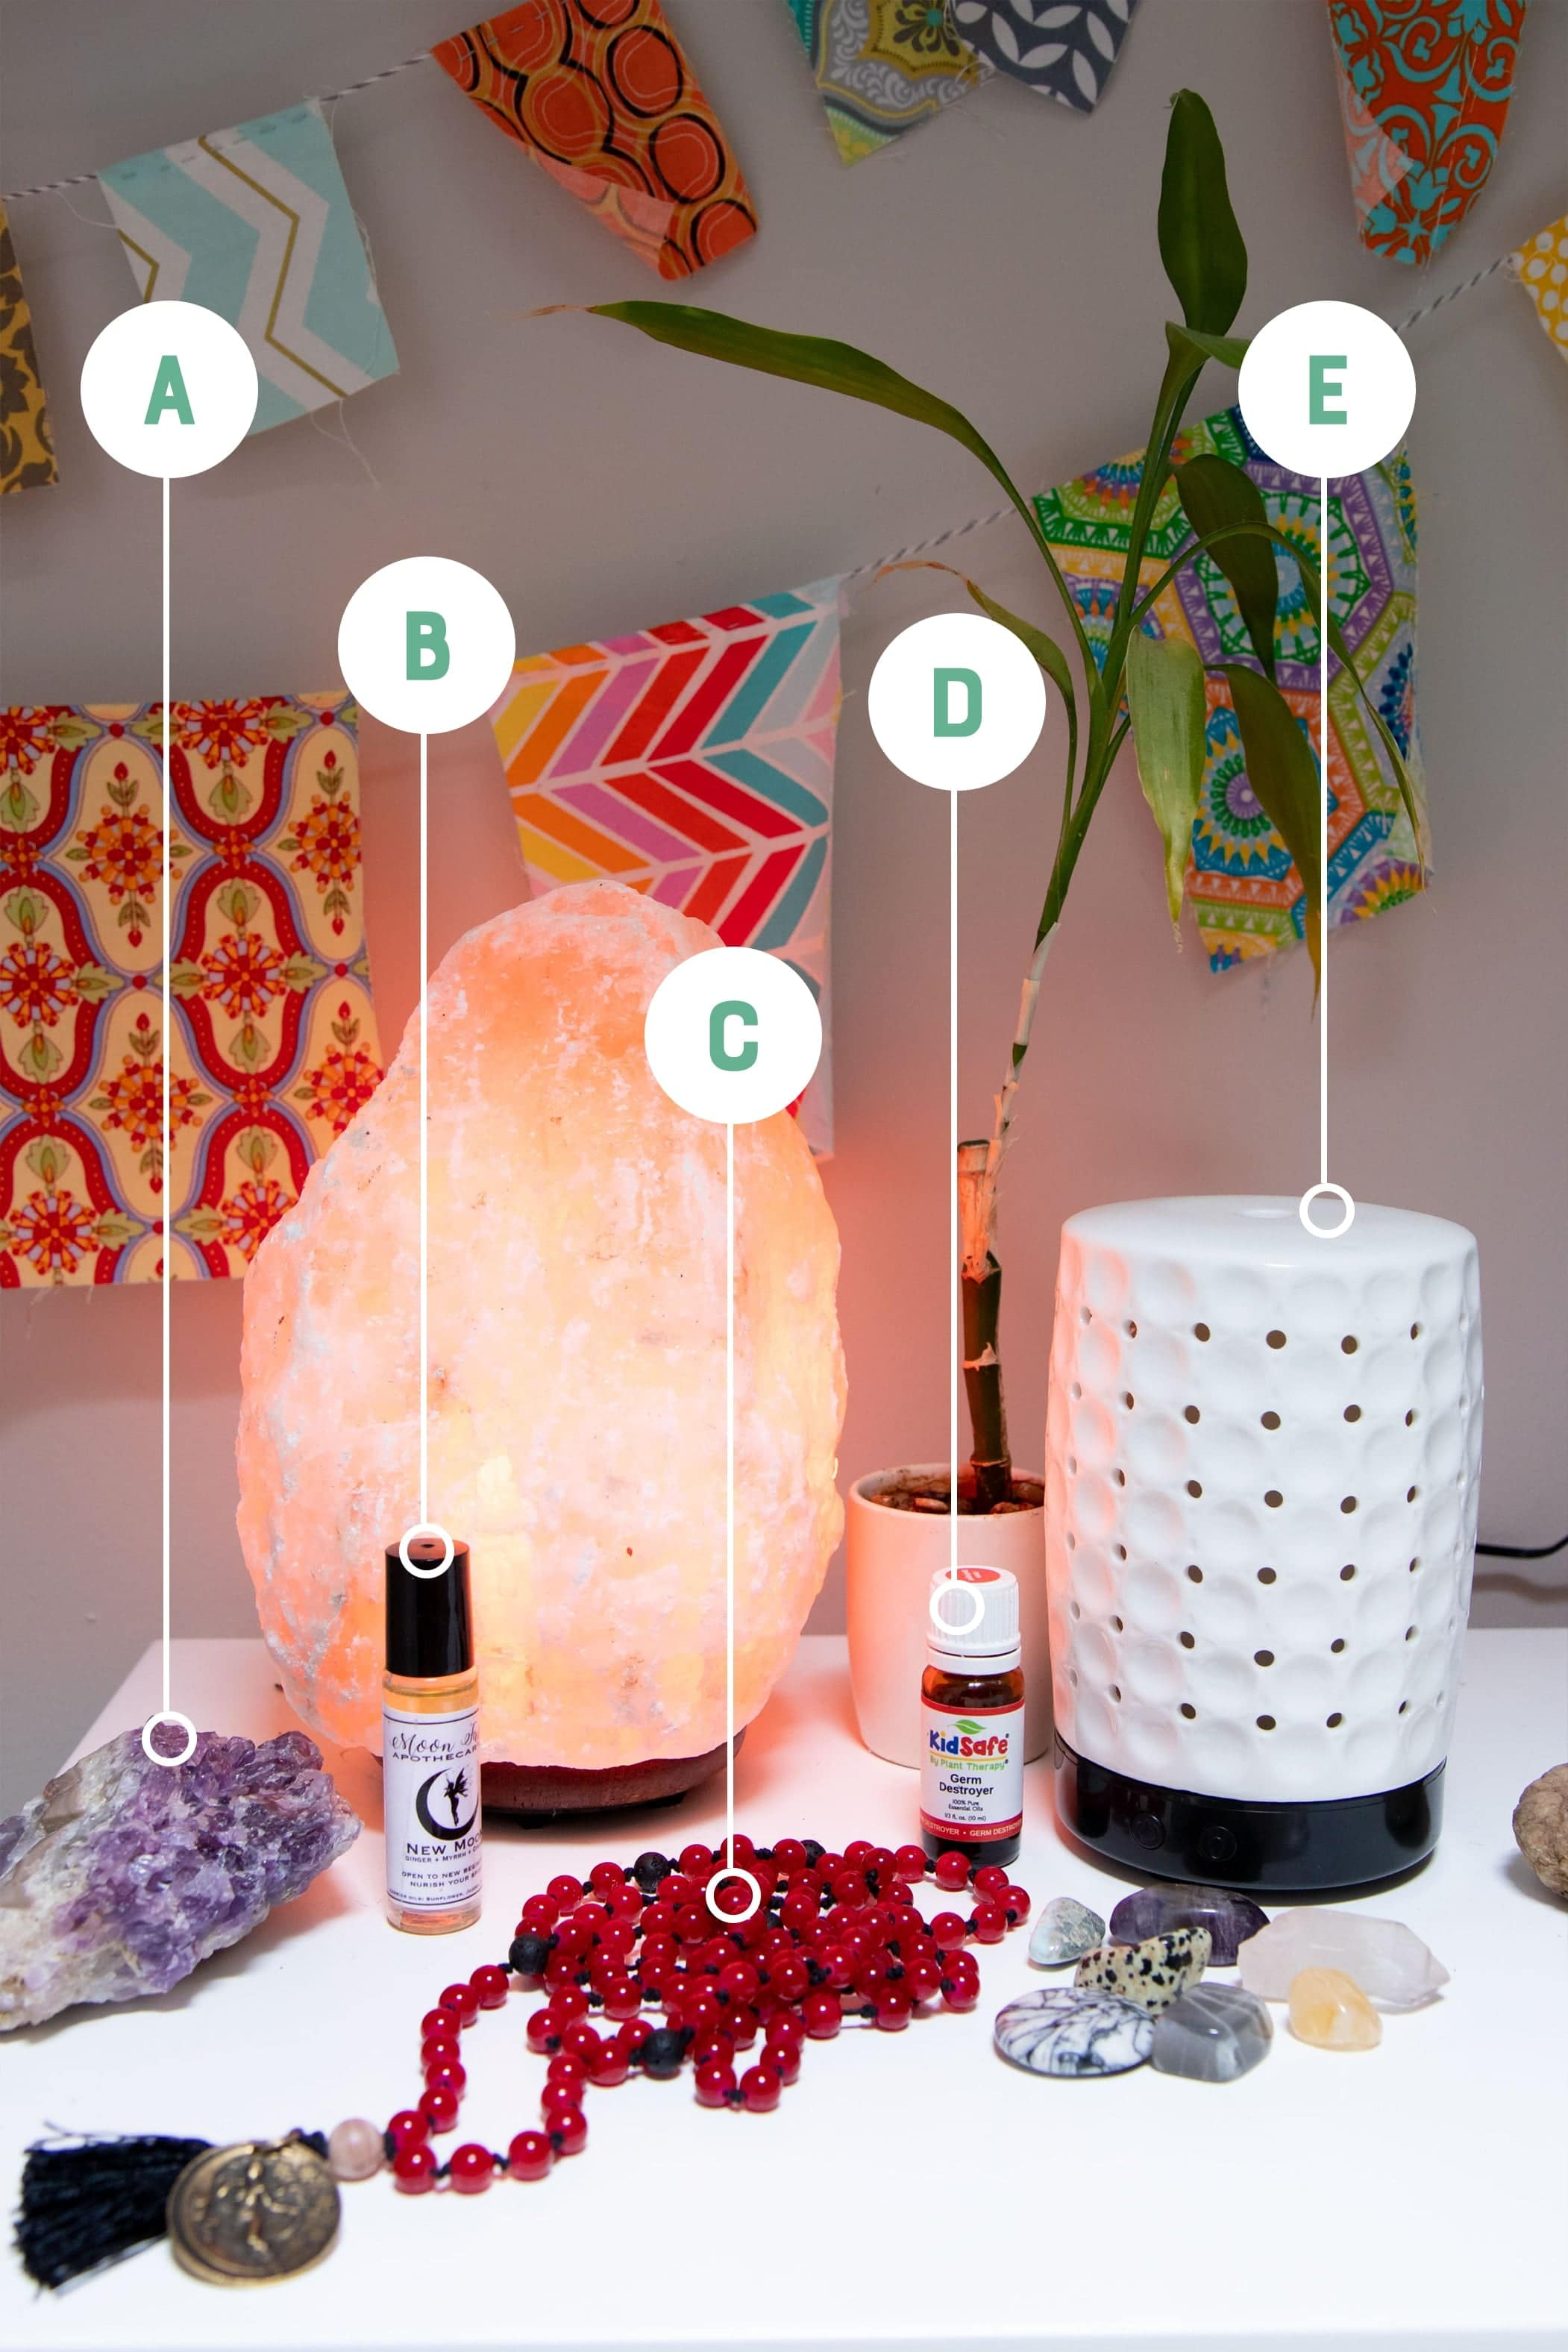 Natural home items arranged on a white table and labeled with letters: salt lamp, amethyst crystal, essential oils and diffuser, and a mala.